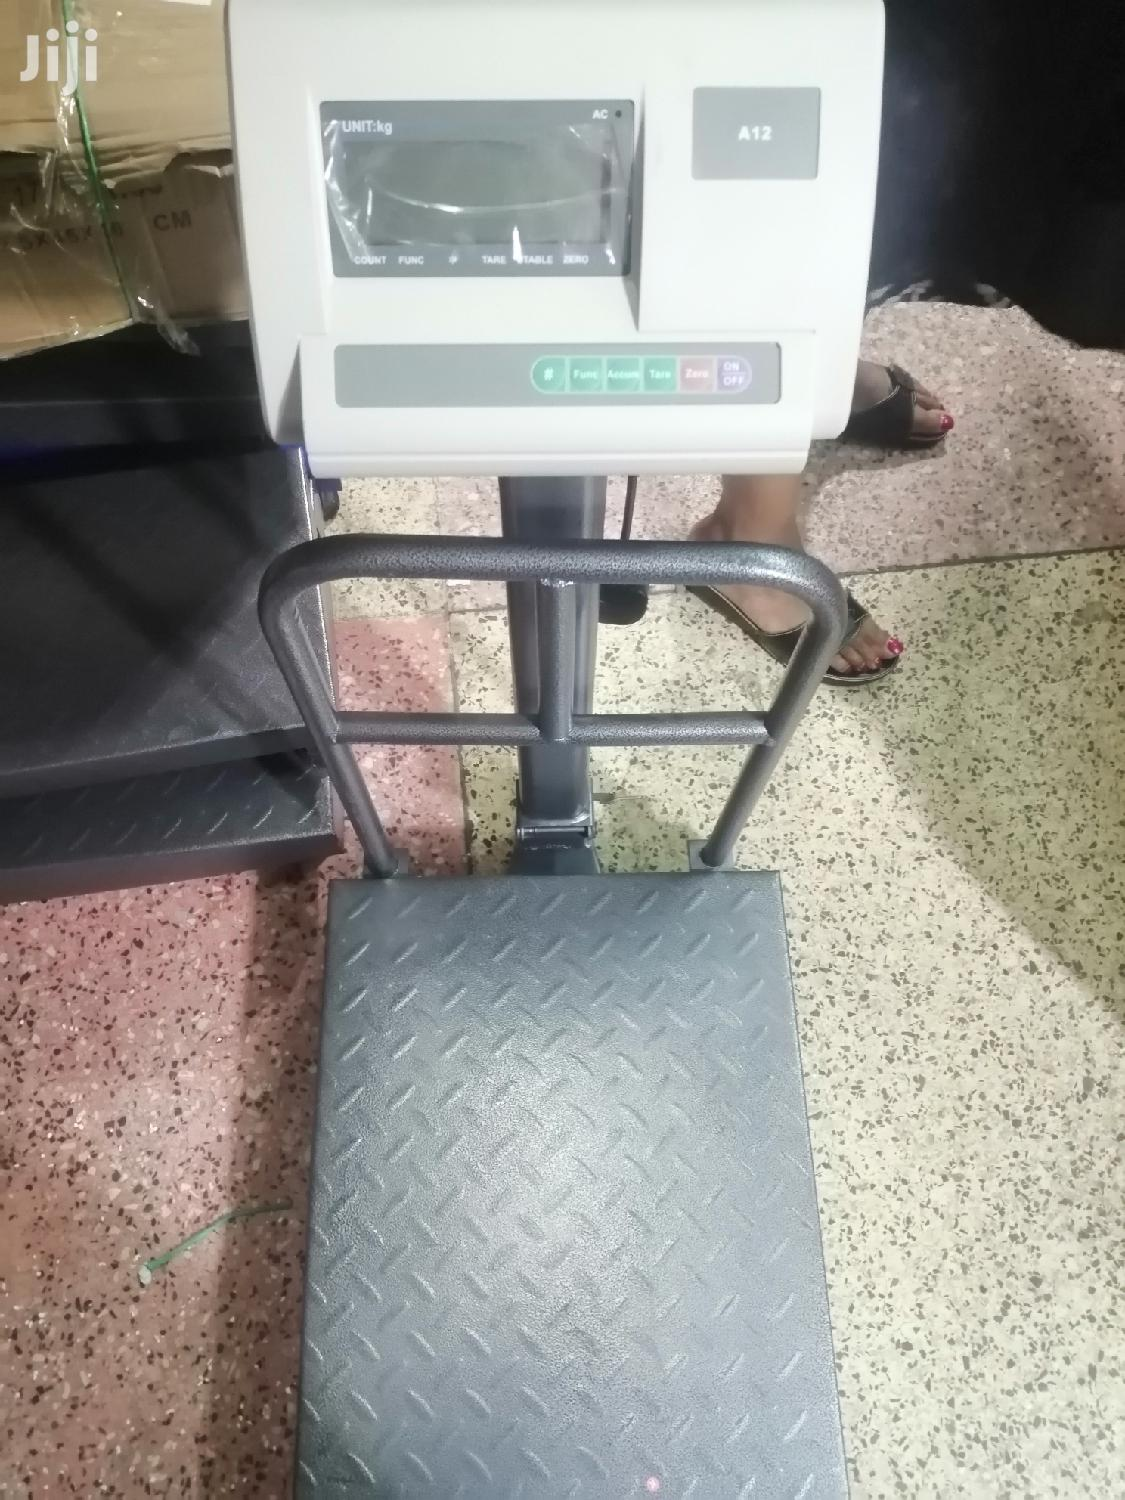 300kgs A12 Weighing Digital Scale